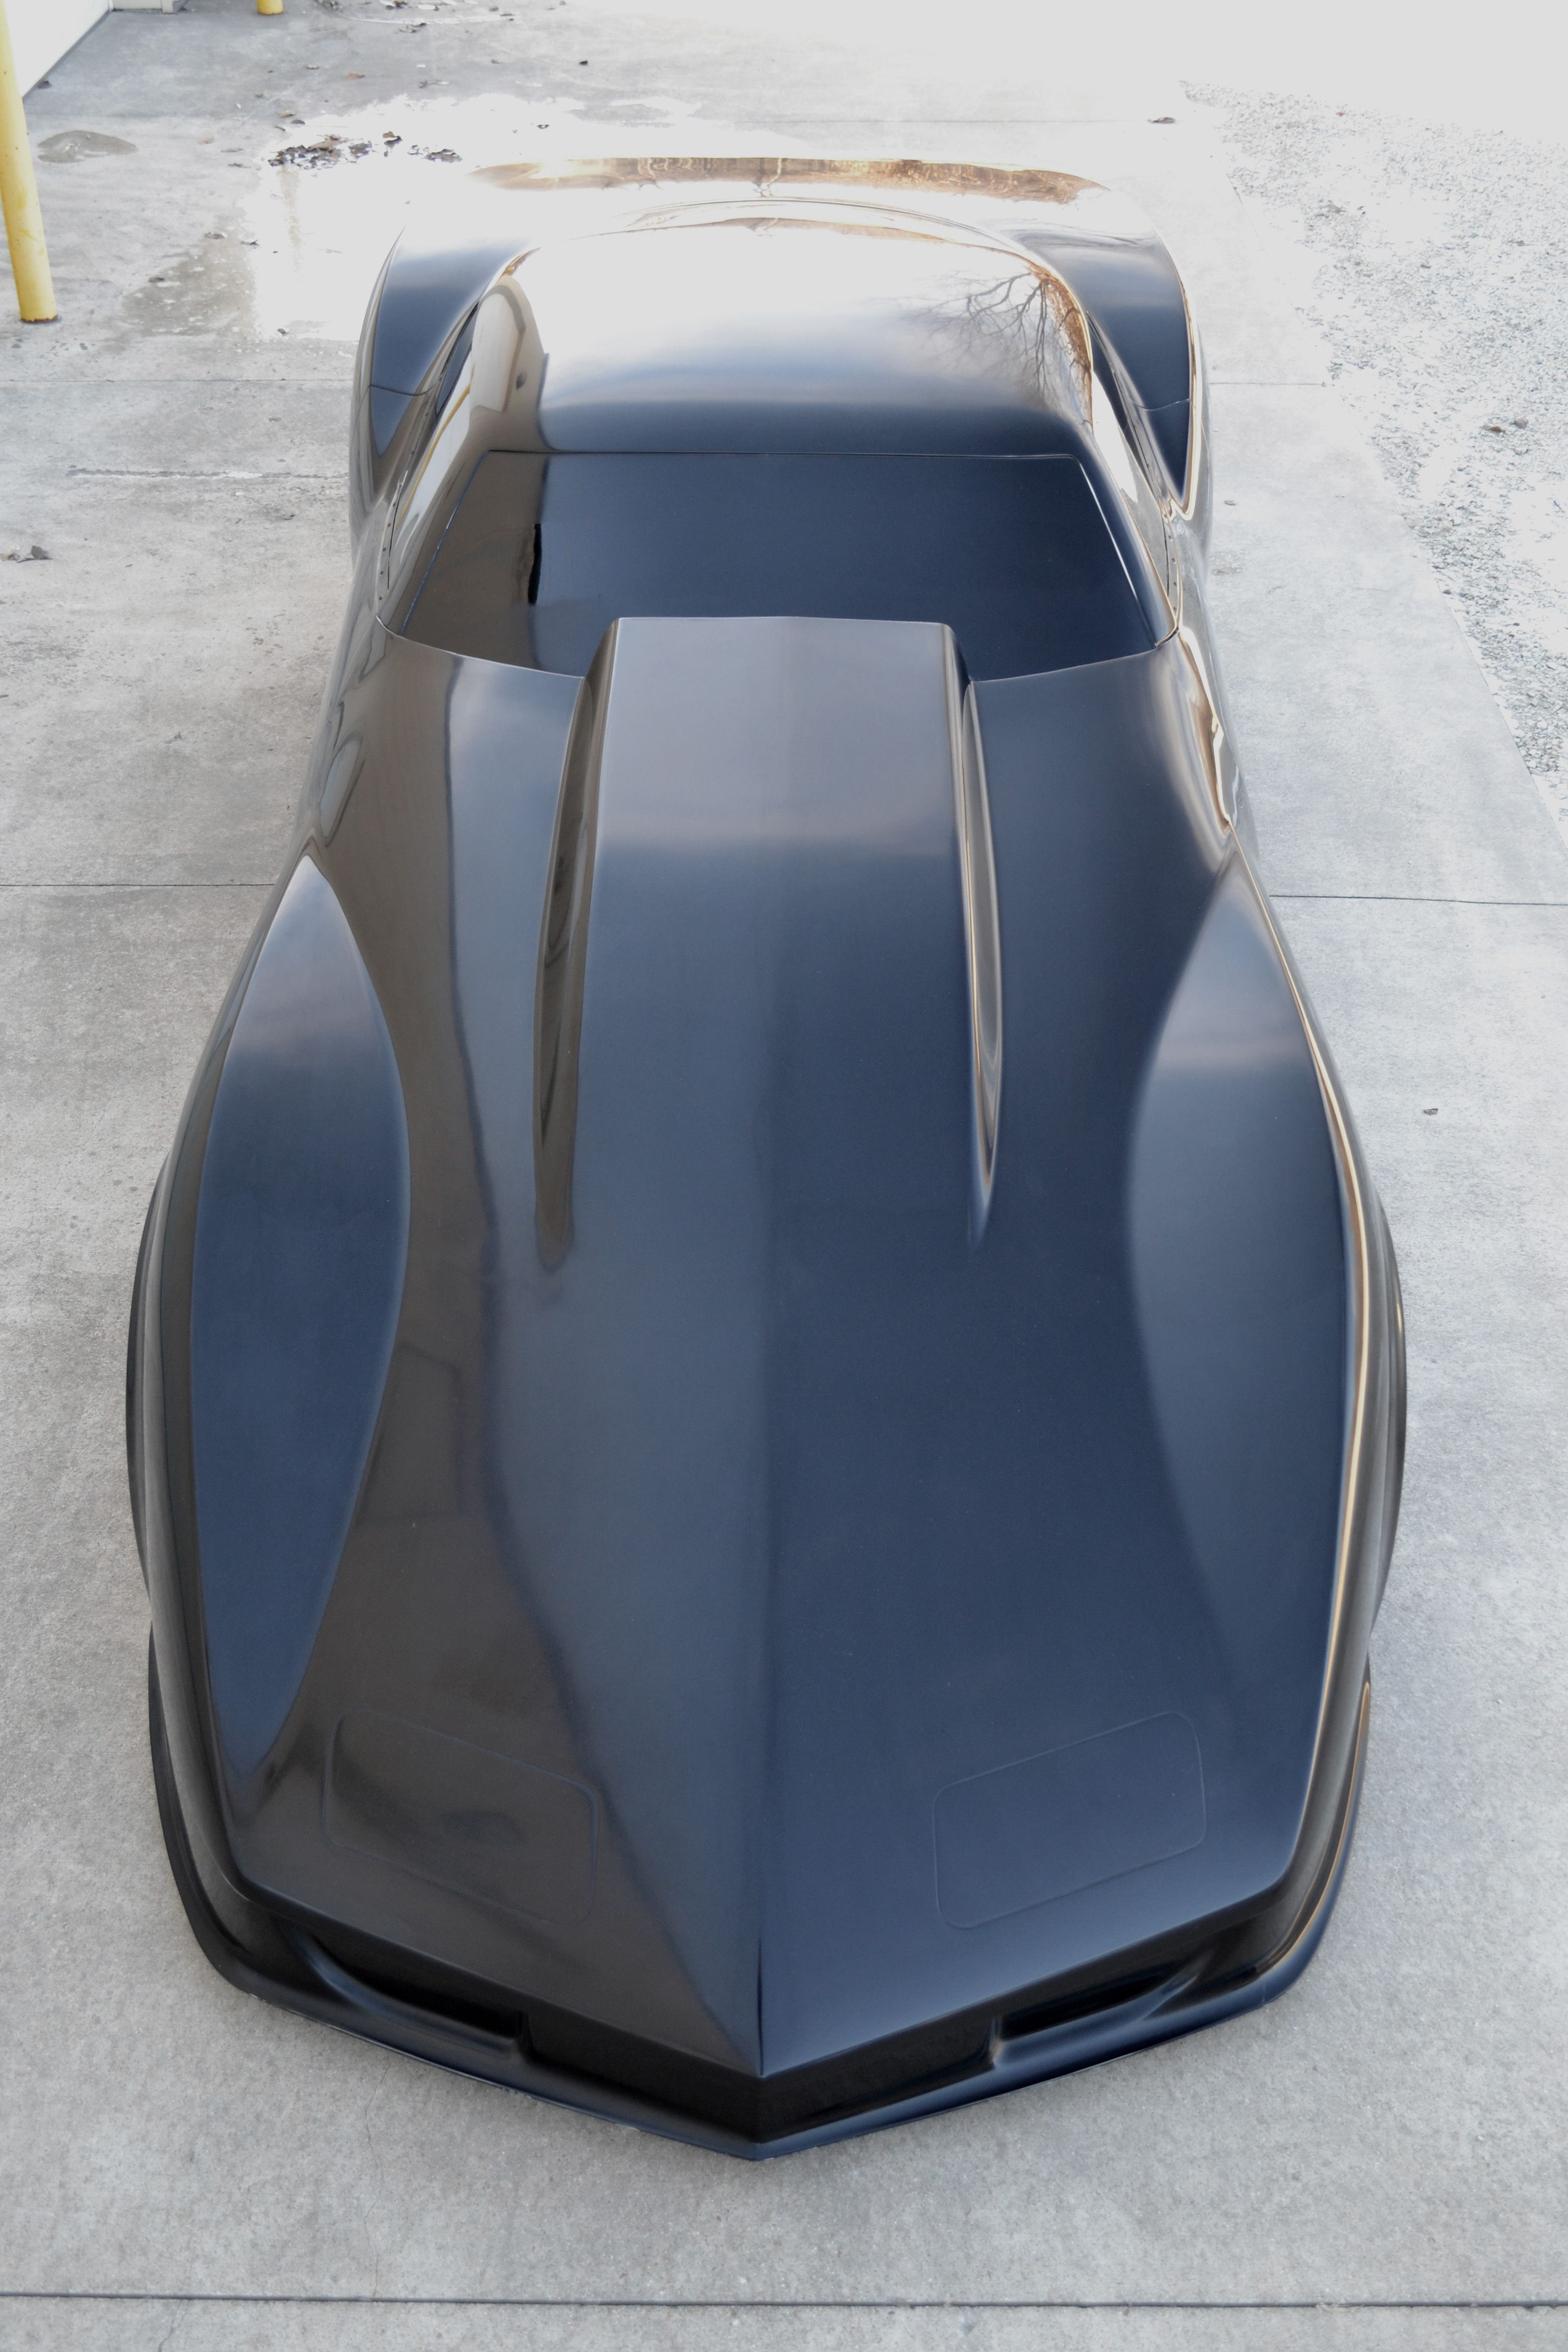 Photos Of The 1979 Corvette C3 Andy Mccoy Drag Racing Parts Composites Chassis In 2020 Futuristic Cars Corvette C3 Sports Cars Luxury